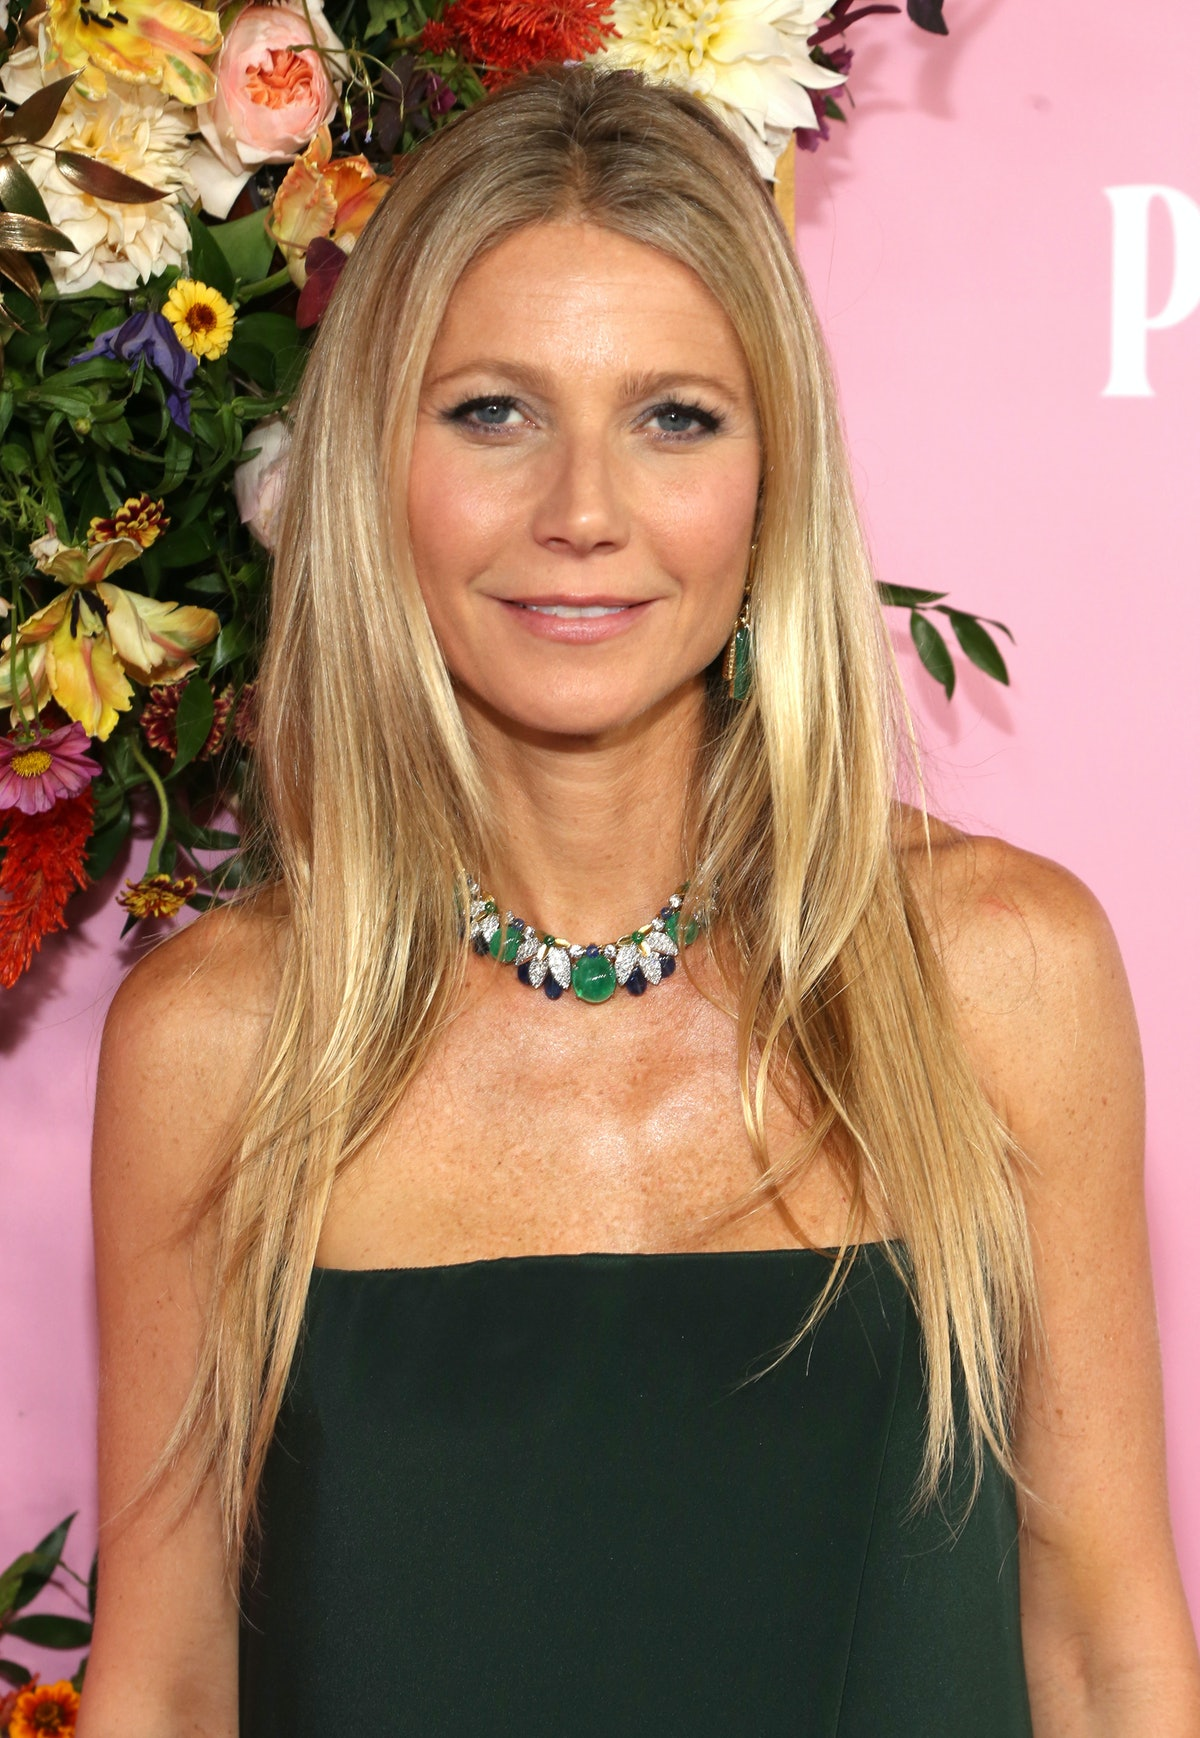 Gwyneth Paltrow named one of the most ridiculous (bad) Libra celebrities.